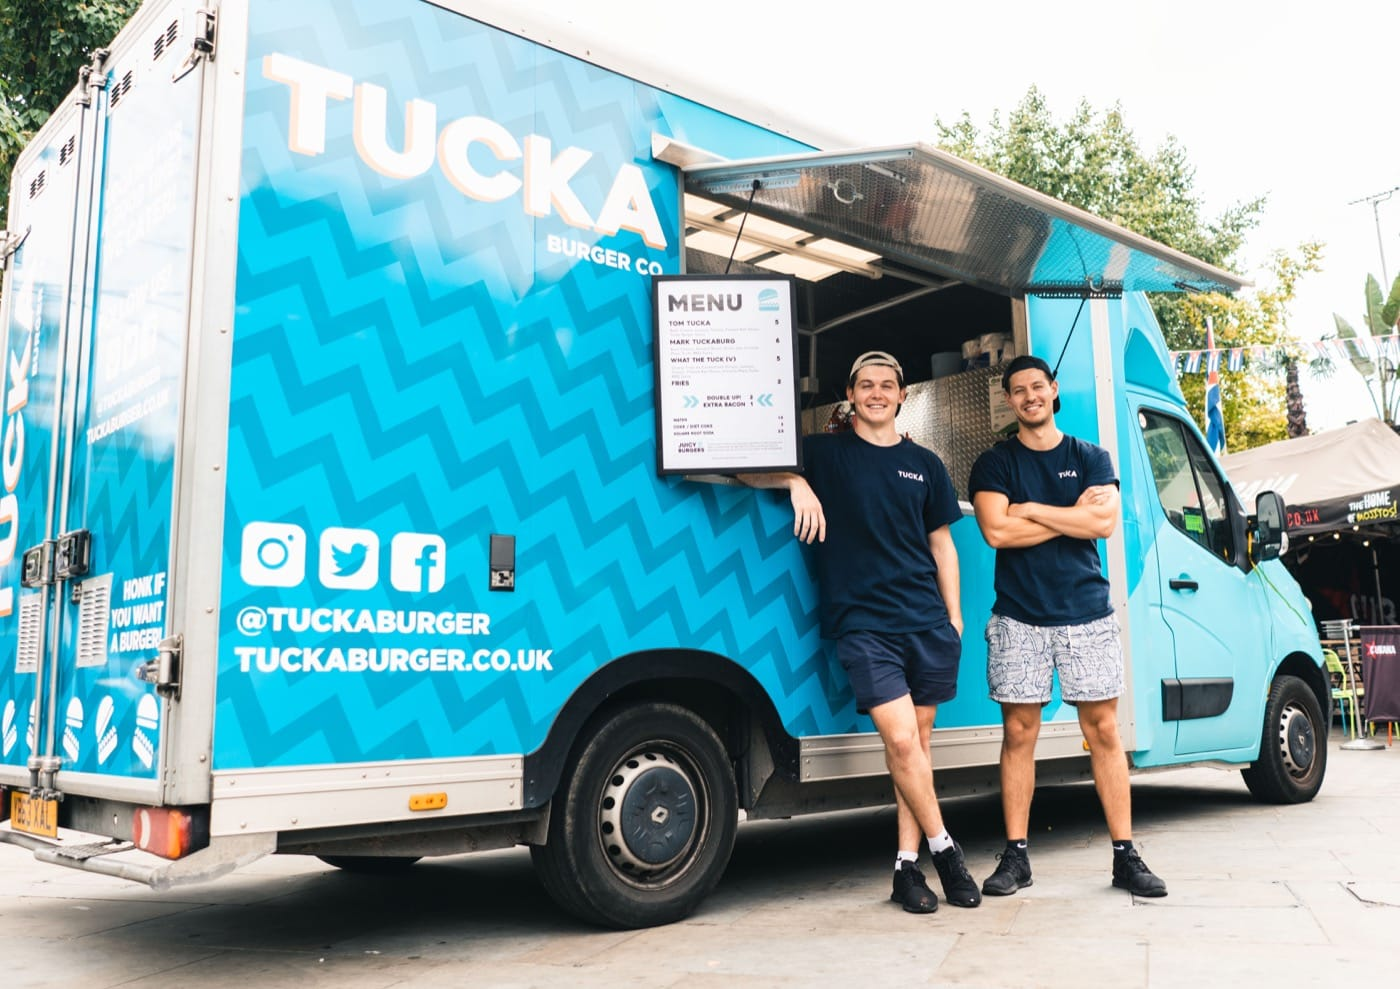 Feast-It-Tucka-Burger-Street-Food-Truck-Gourmet-Burgers-Party-Food-Event-Catering-Book-Now-six